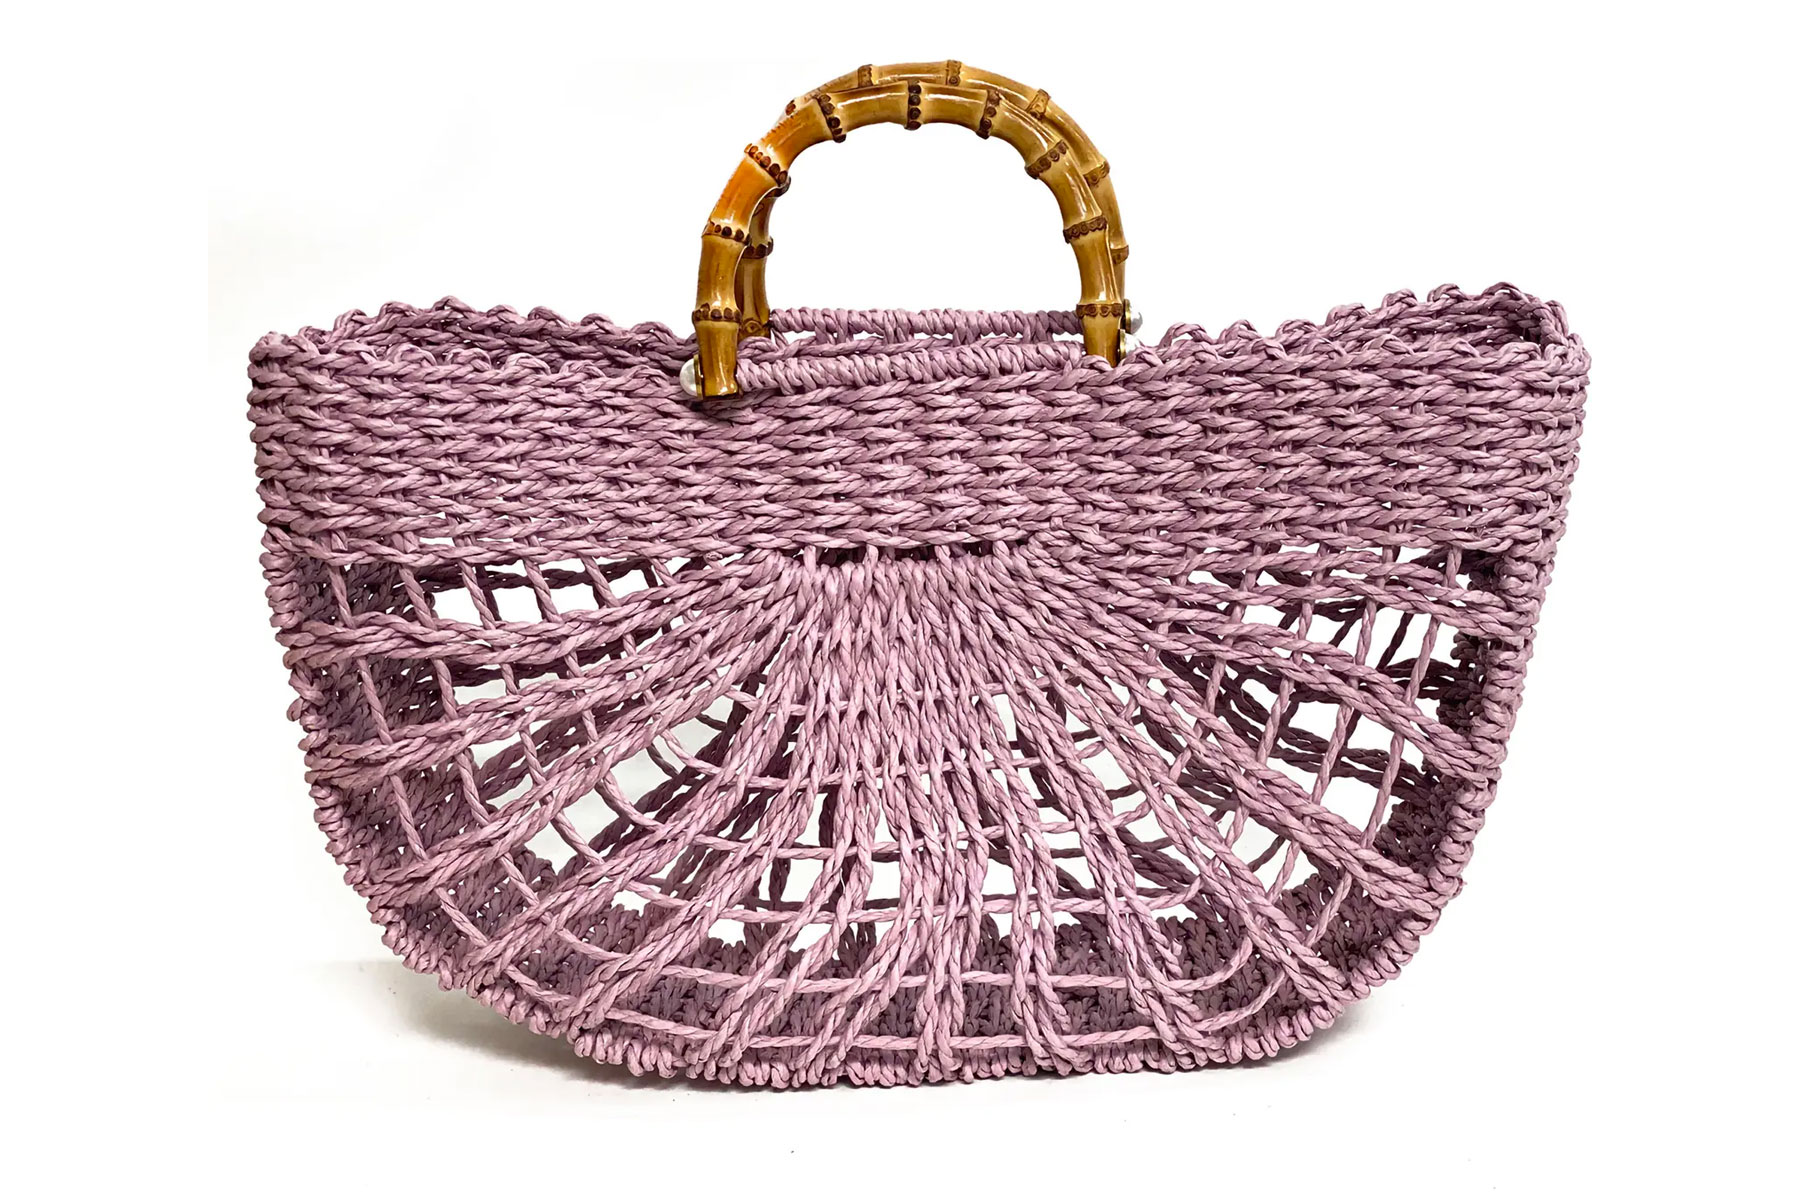 Purple straw structured tote